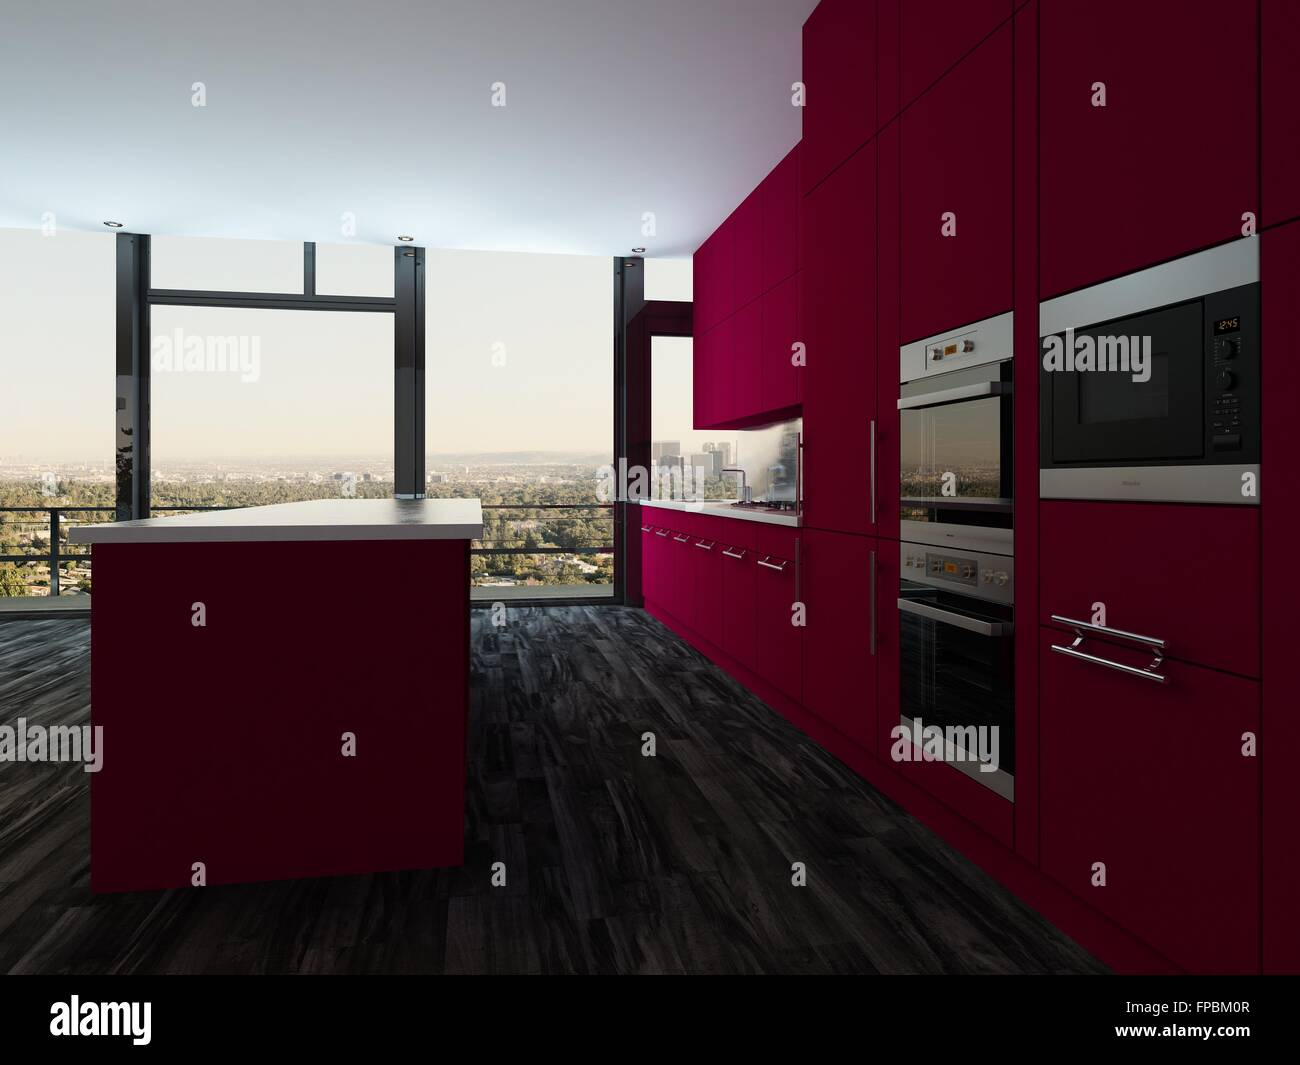 Colorful modern open plan kitchen and dining room with bright     Colorful modern open plan kitchen and dining room with bright magenta  cabinets and a stylish modern dining suite in front of panoramic view  windows